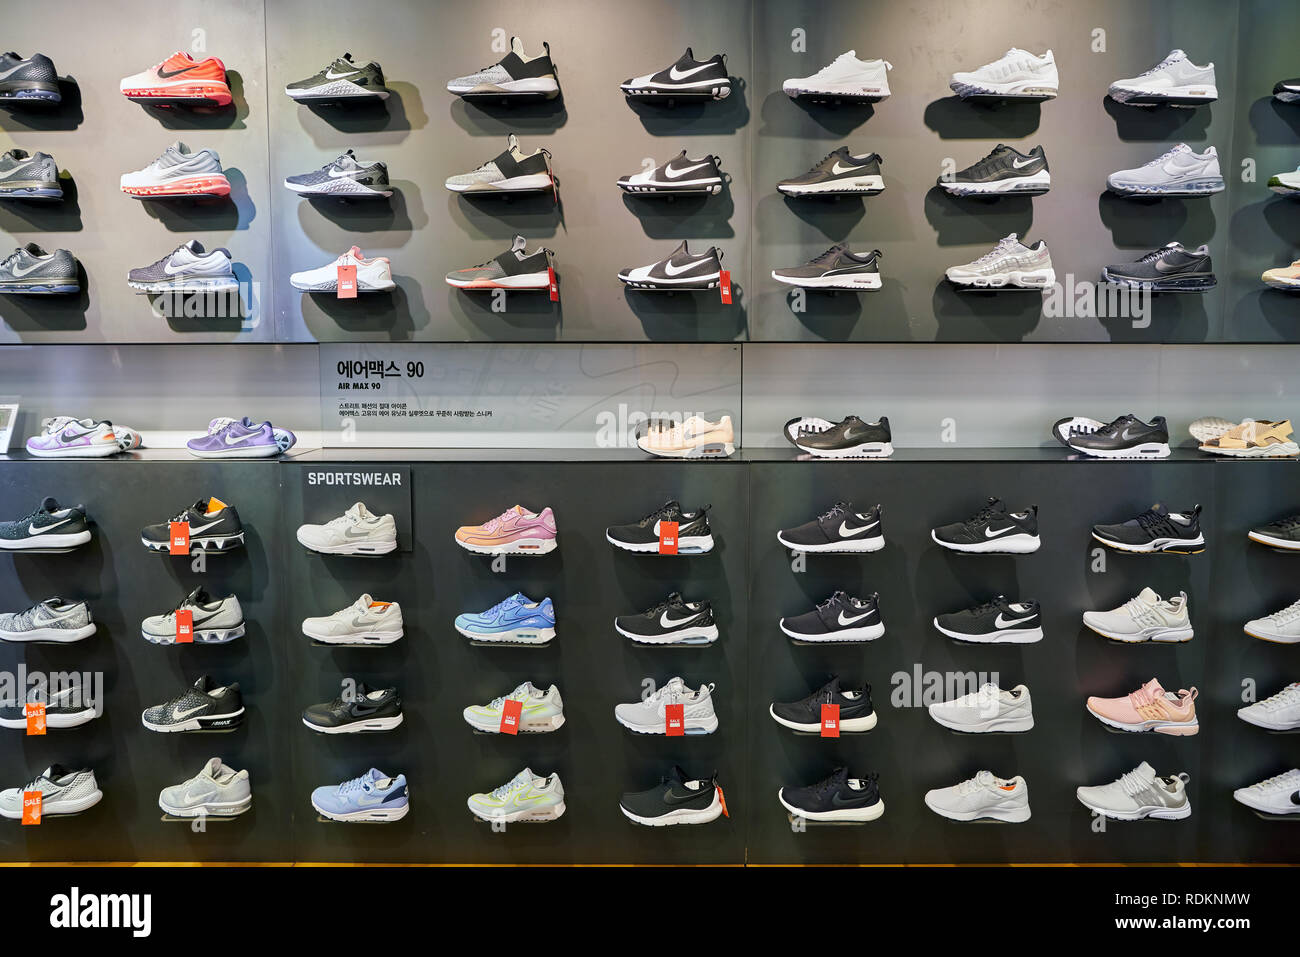 necesario Imperial Decimal  Nike Sneakers On Display In High Resolution Stock Photography and Images -  Alamy